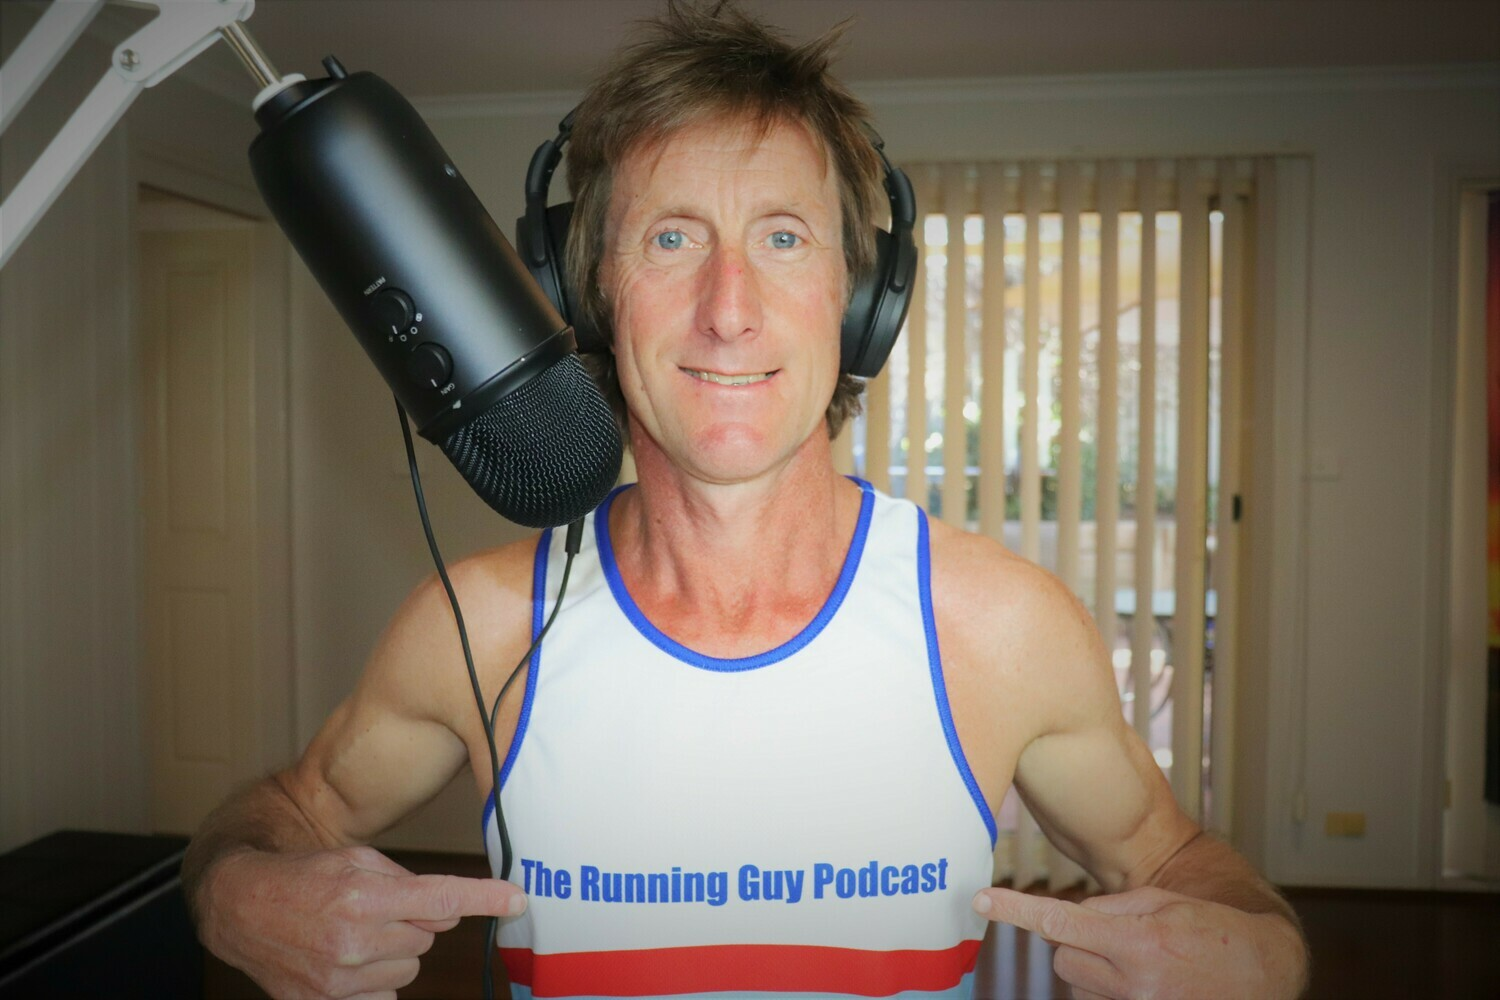 The Running Guy Podcast Singlet